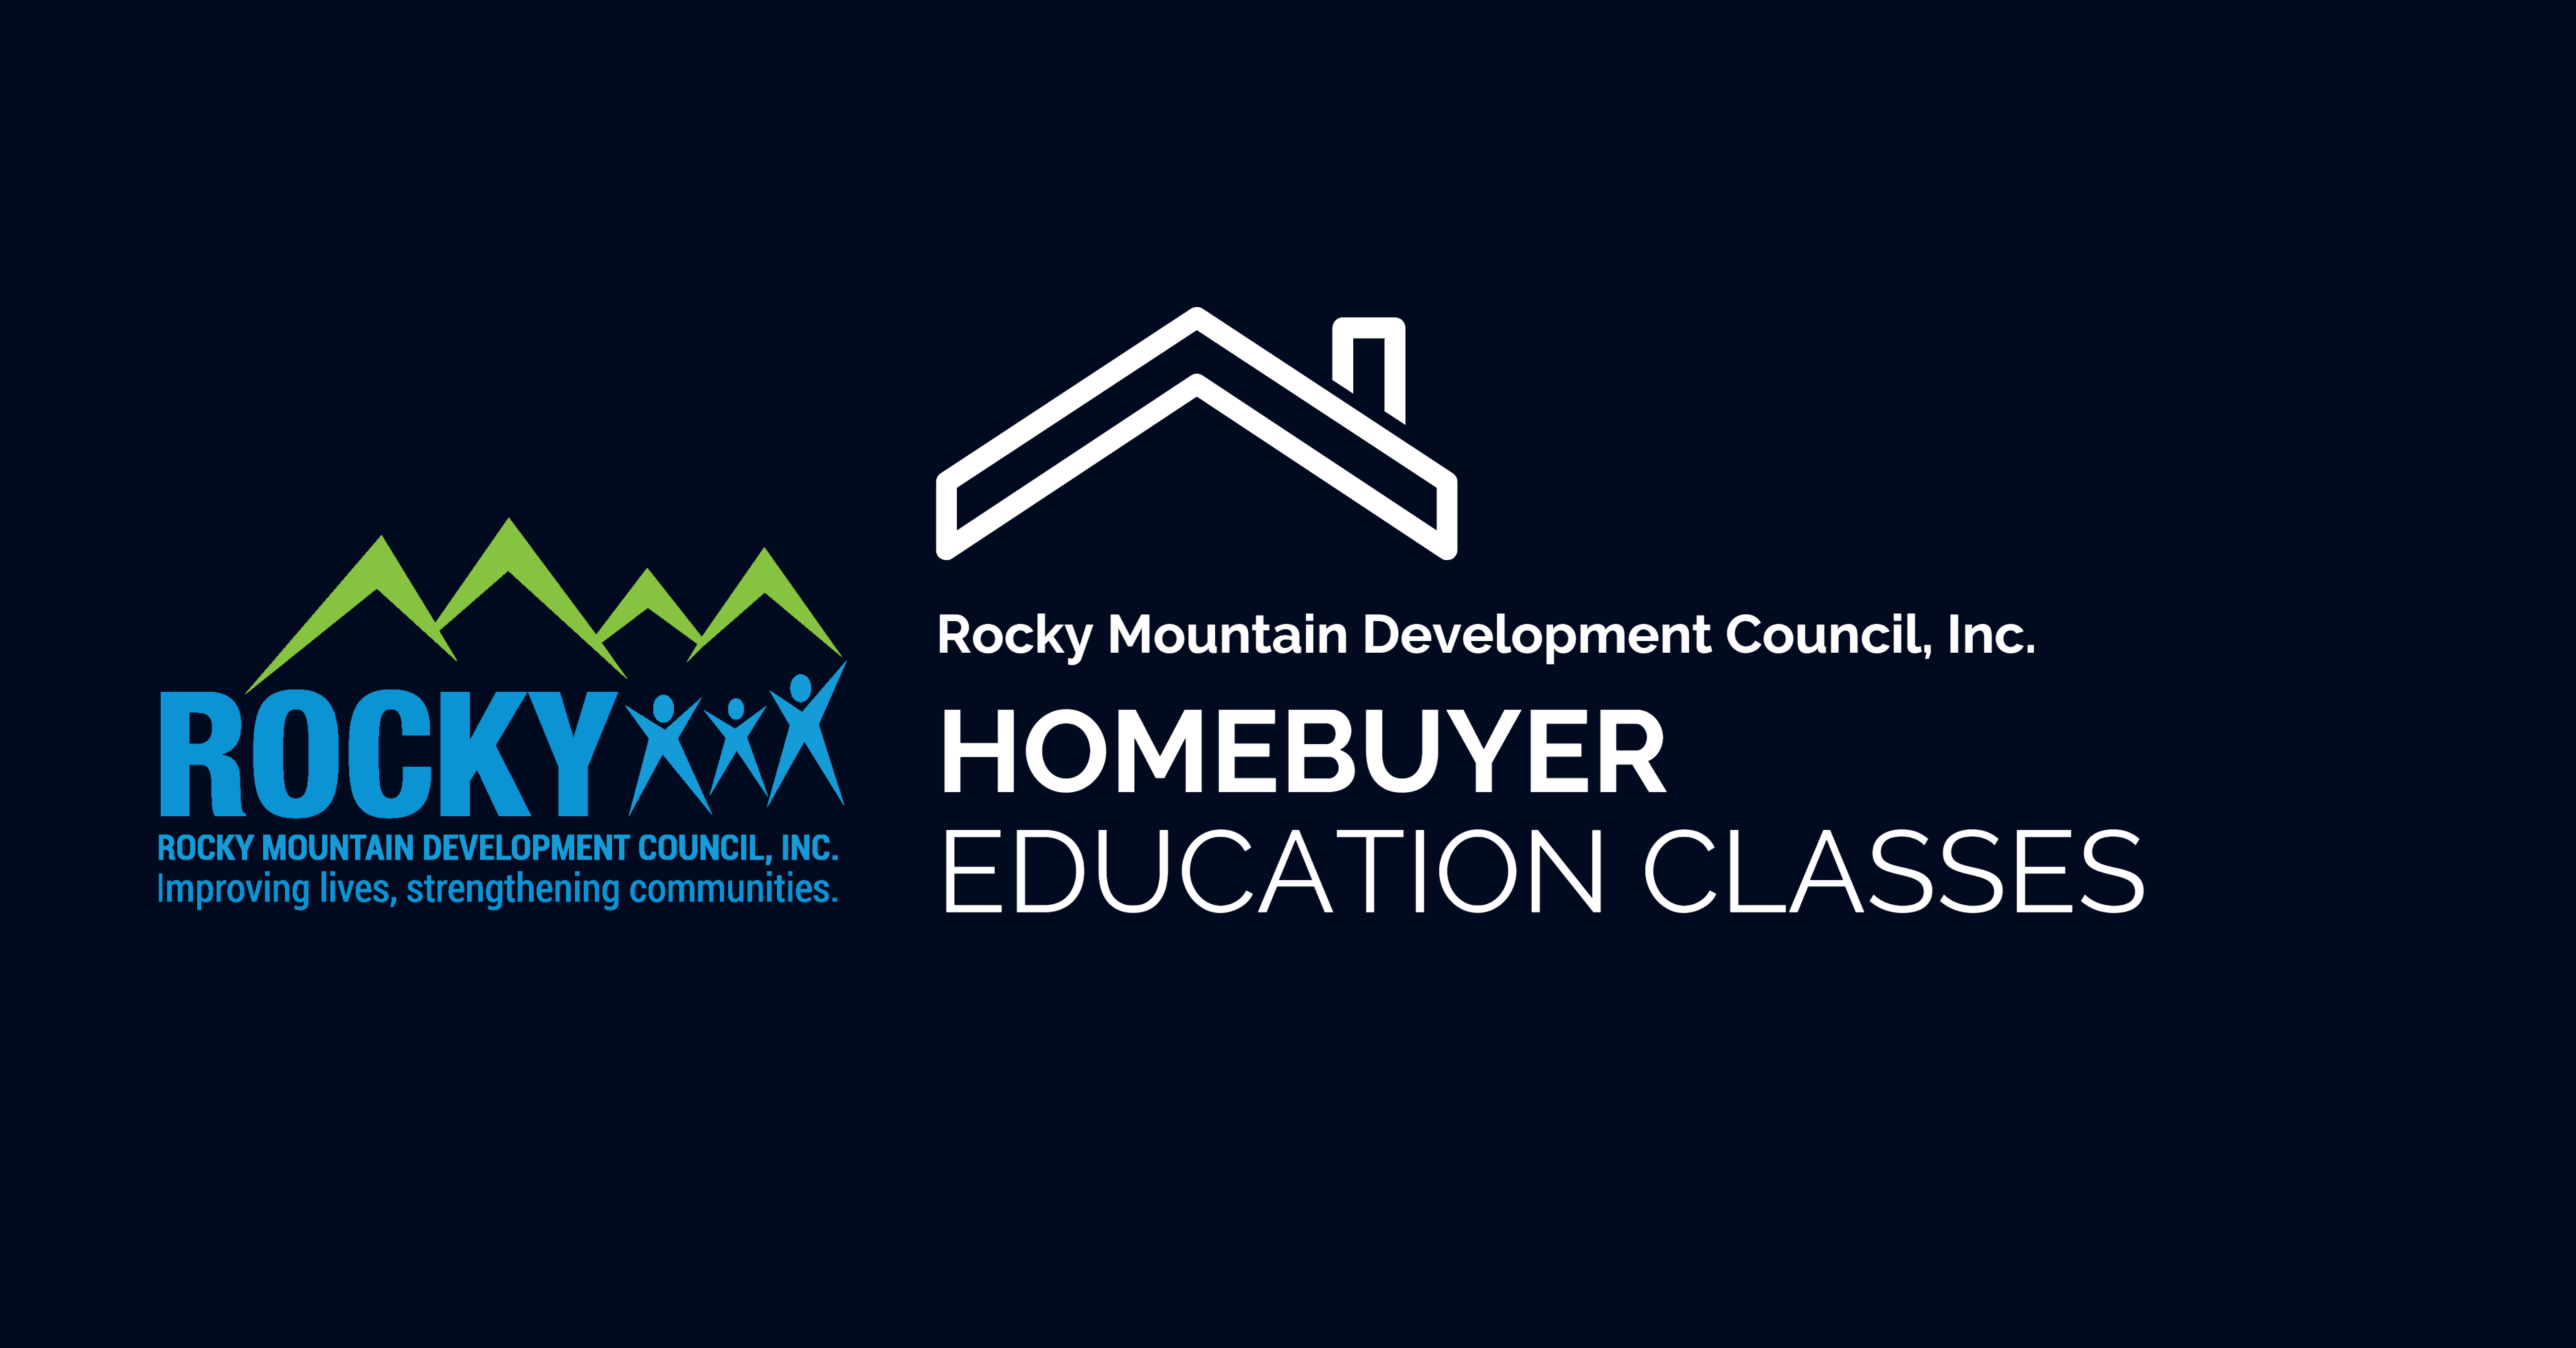 FREE Rocky's Homebuyer Education Class - 3 Part